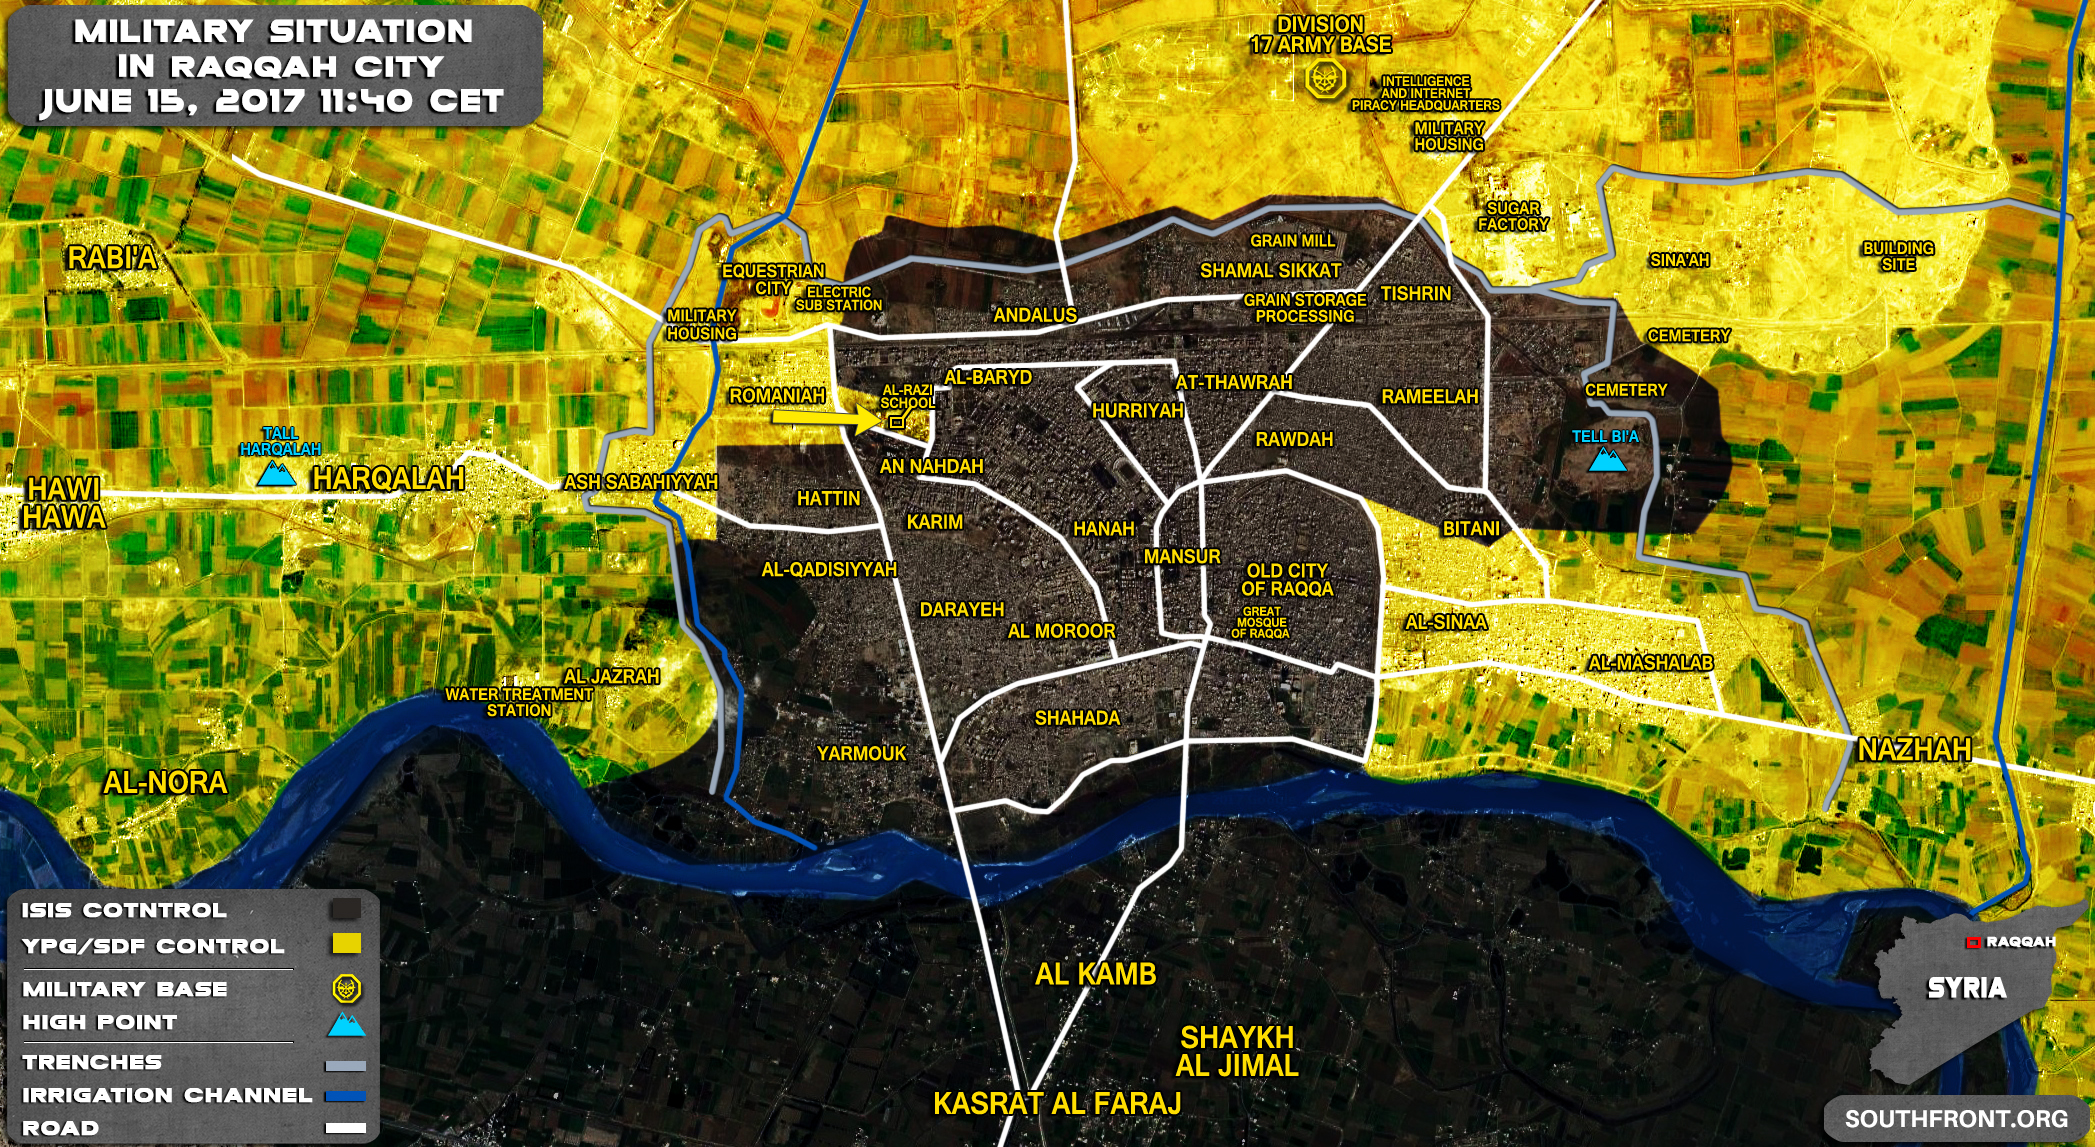 https://southfront.org/wp-content/uploads/2017/06/15jun_Raqqah_city_Syria_War_Map.jpg